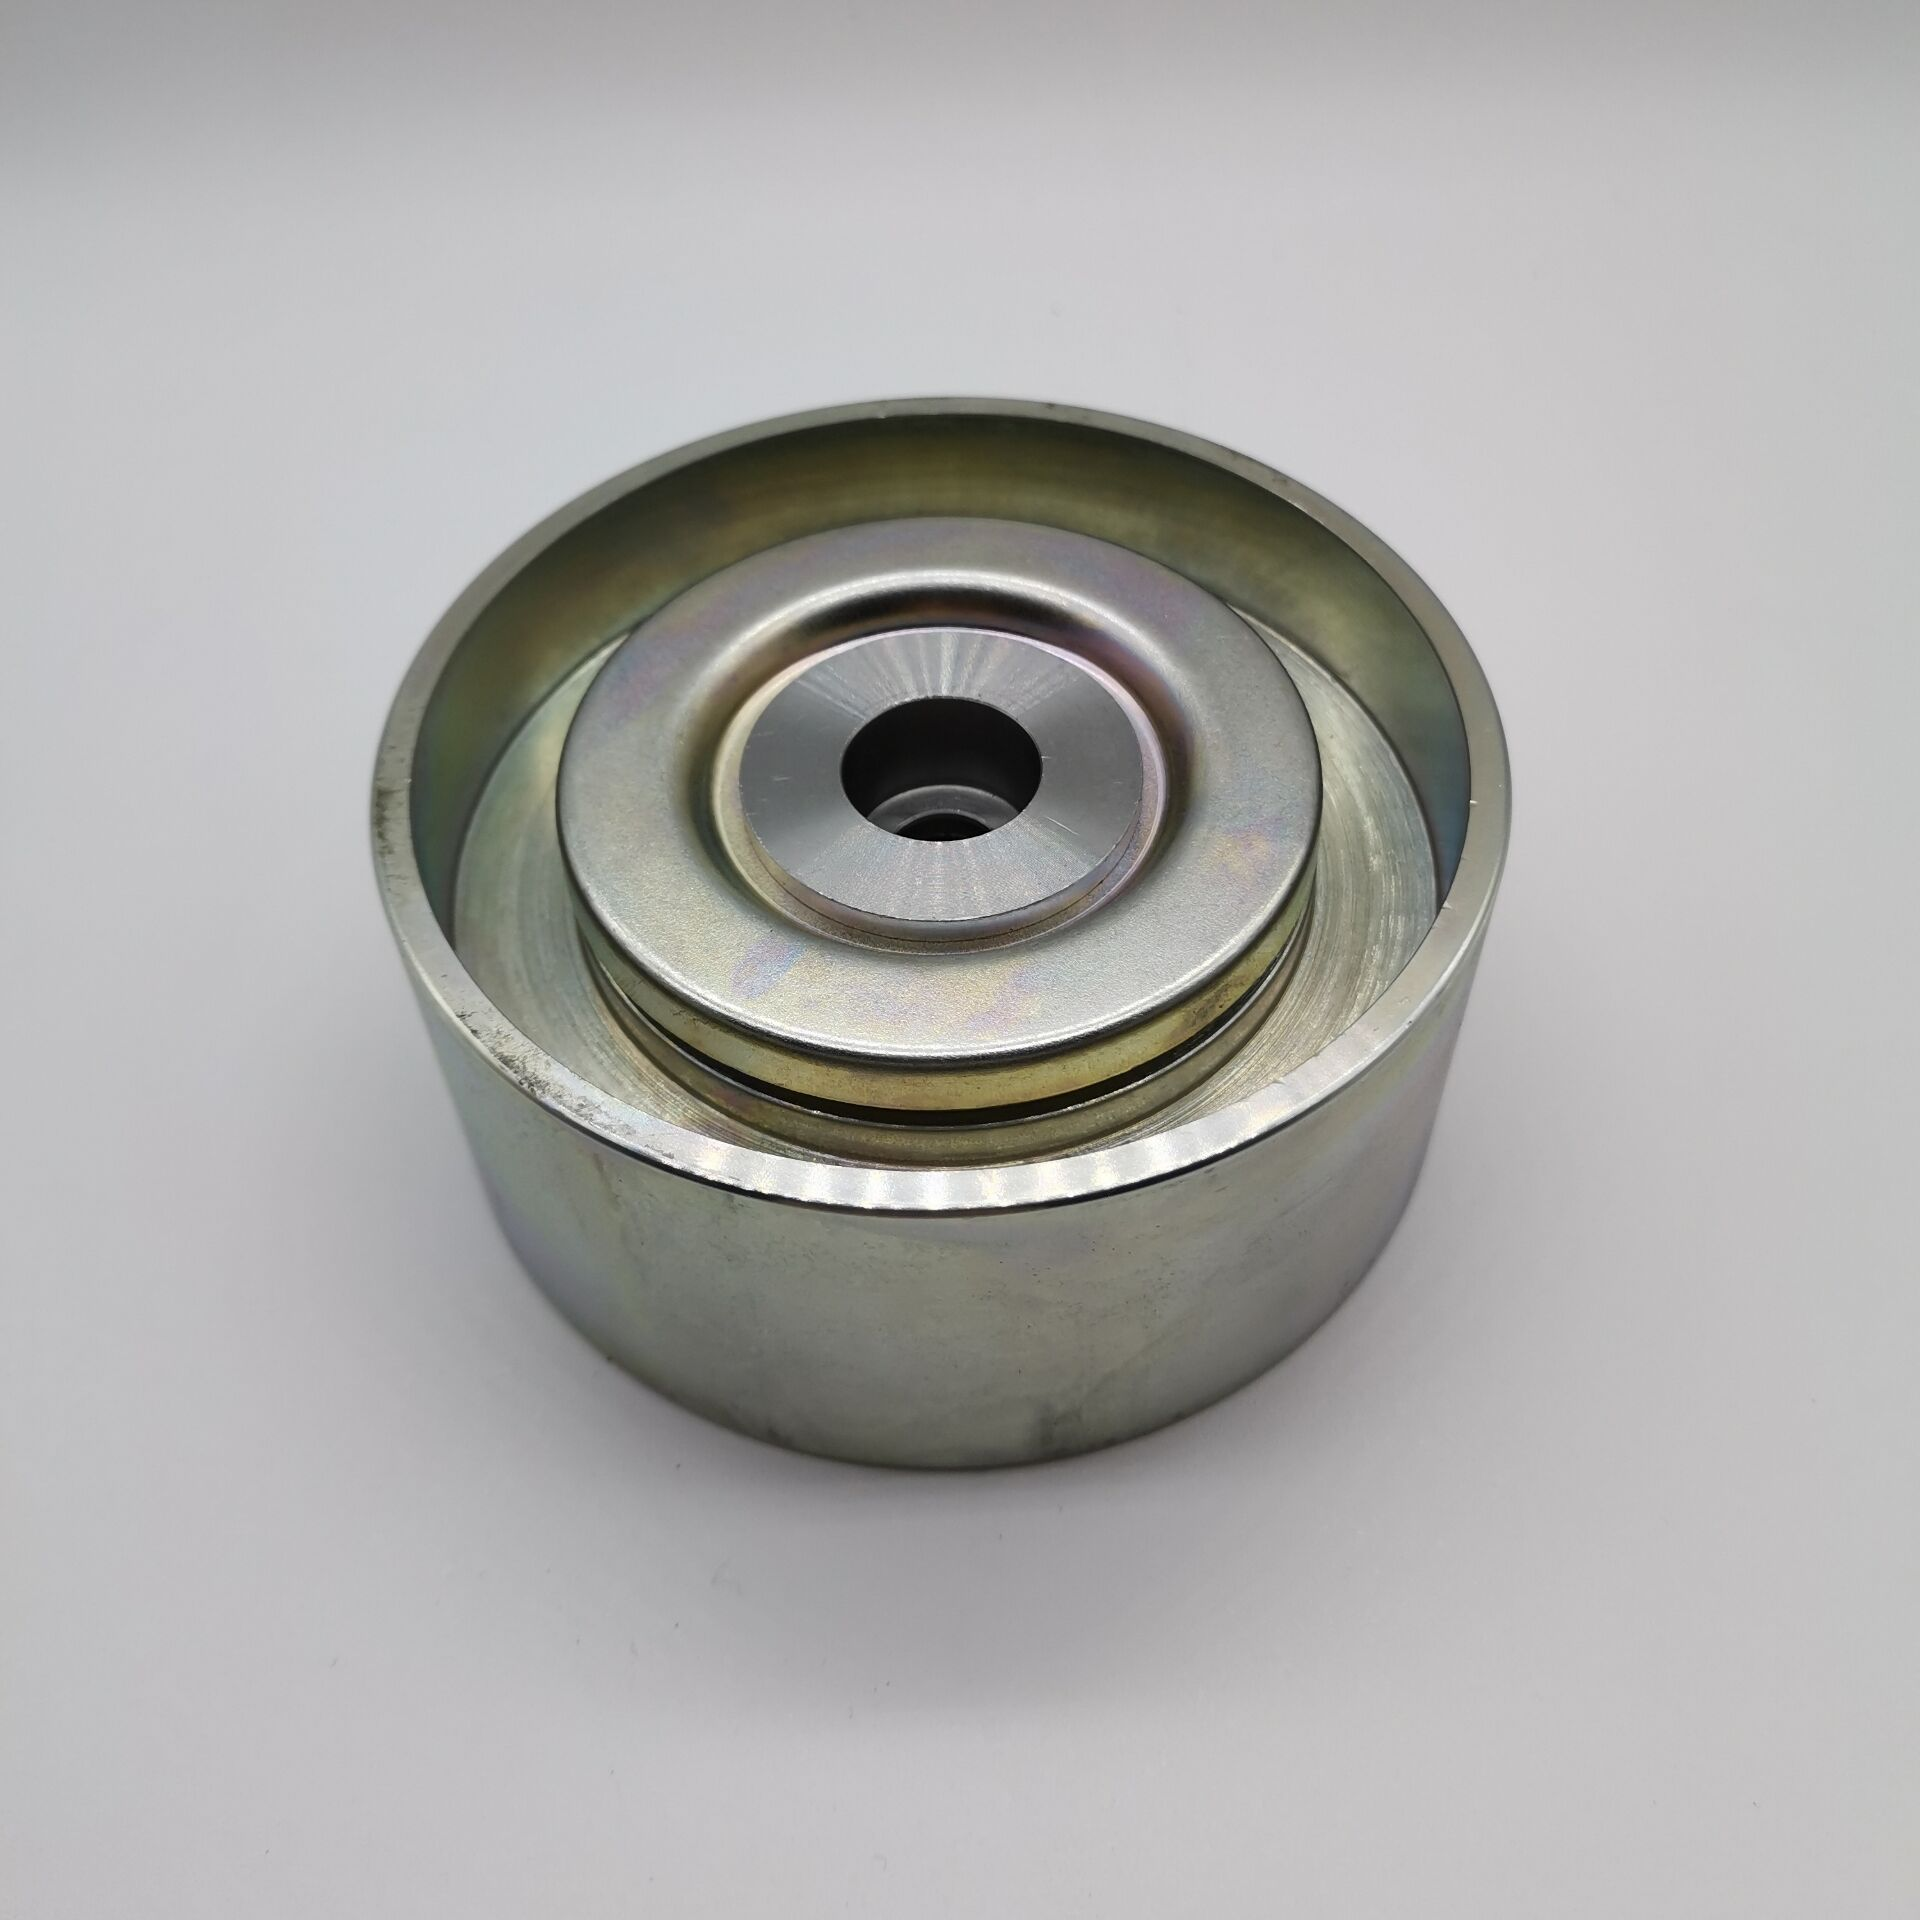 IDLE PULLEY 0005502233 FIT FOR MERCEDE BENZ